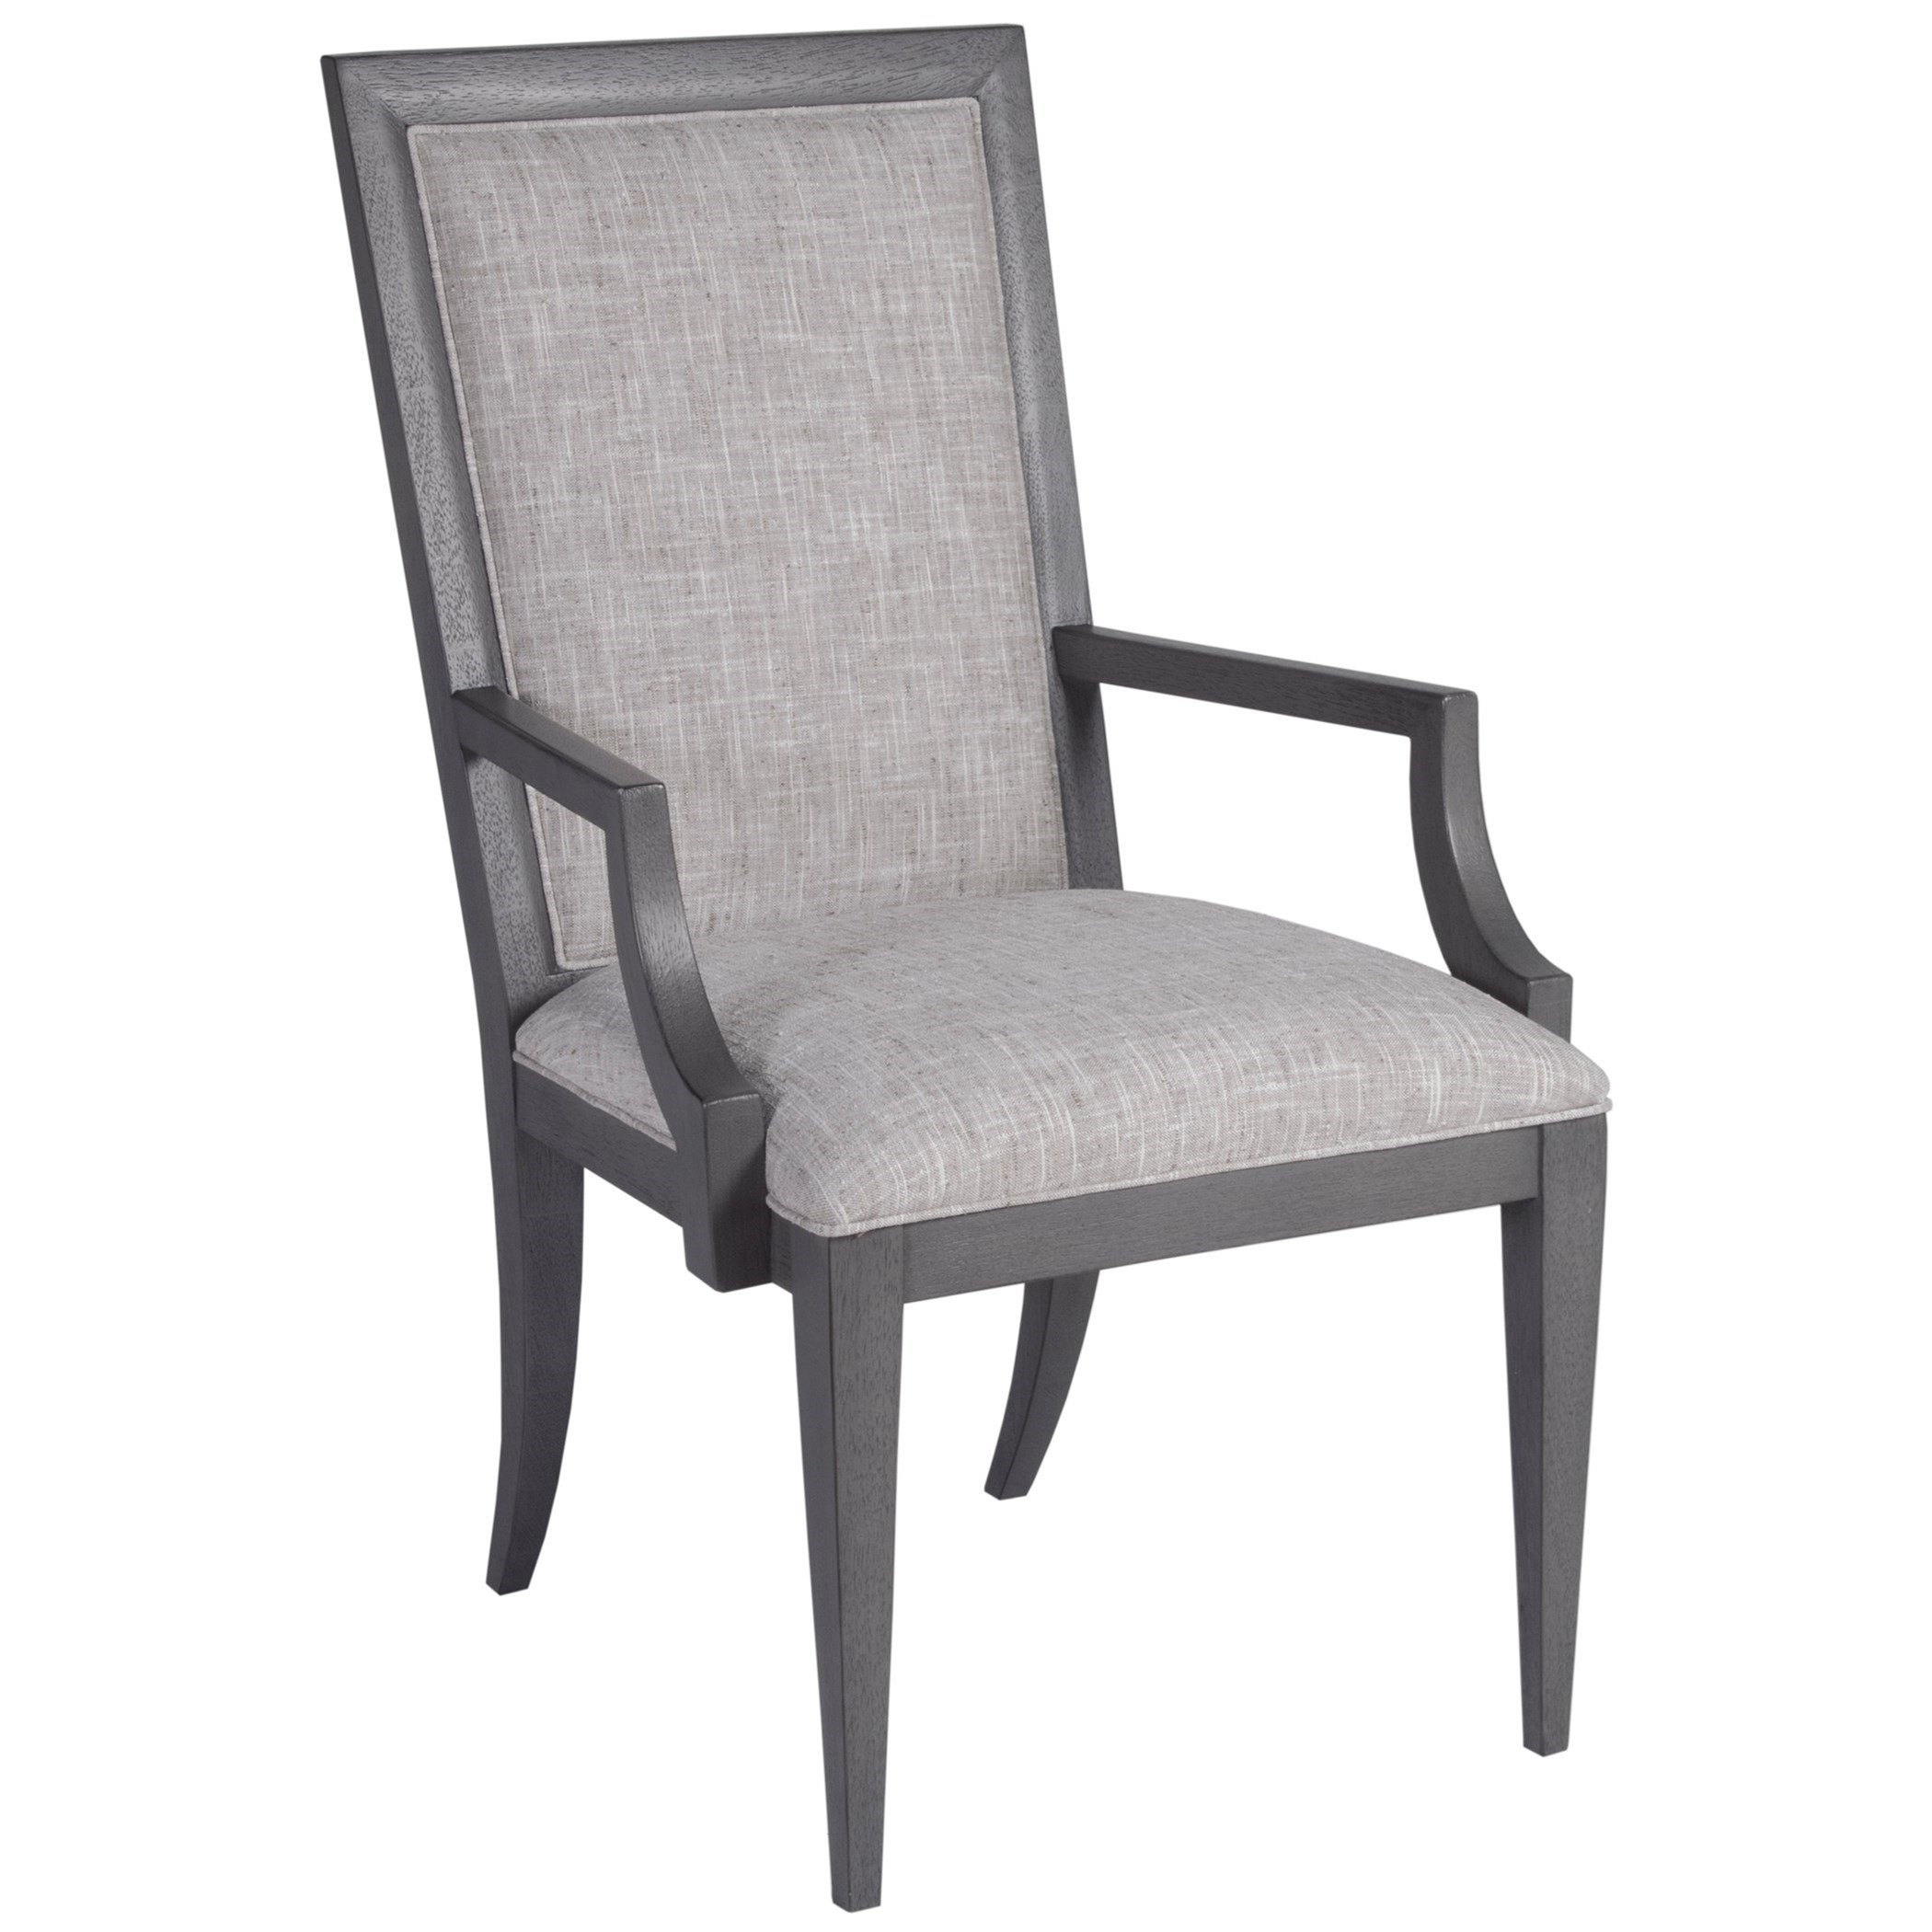 Appellation Upholstered Arm Chair by Artistica at Baer's Furniture